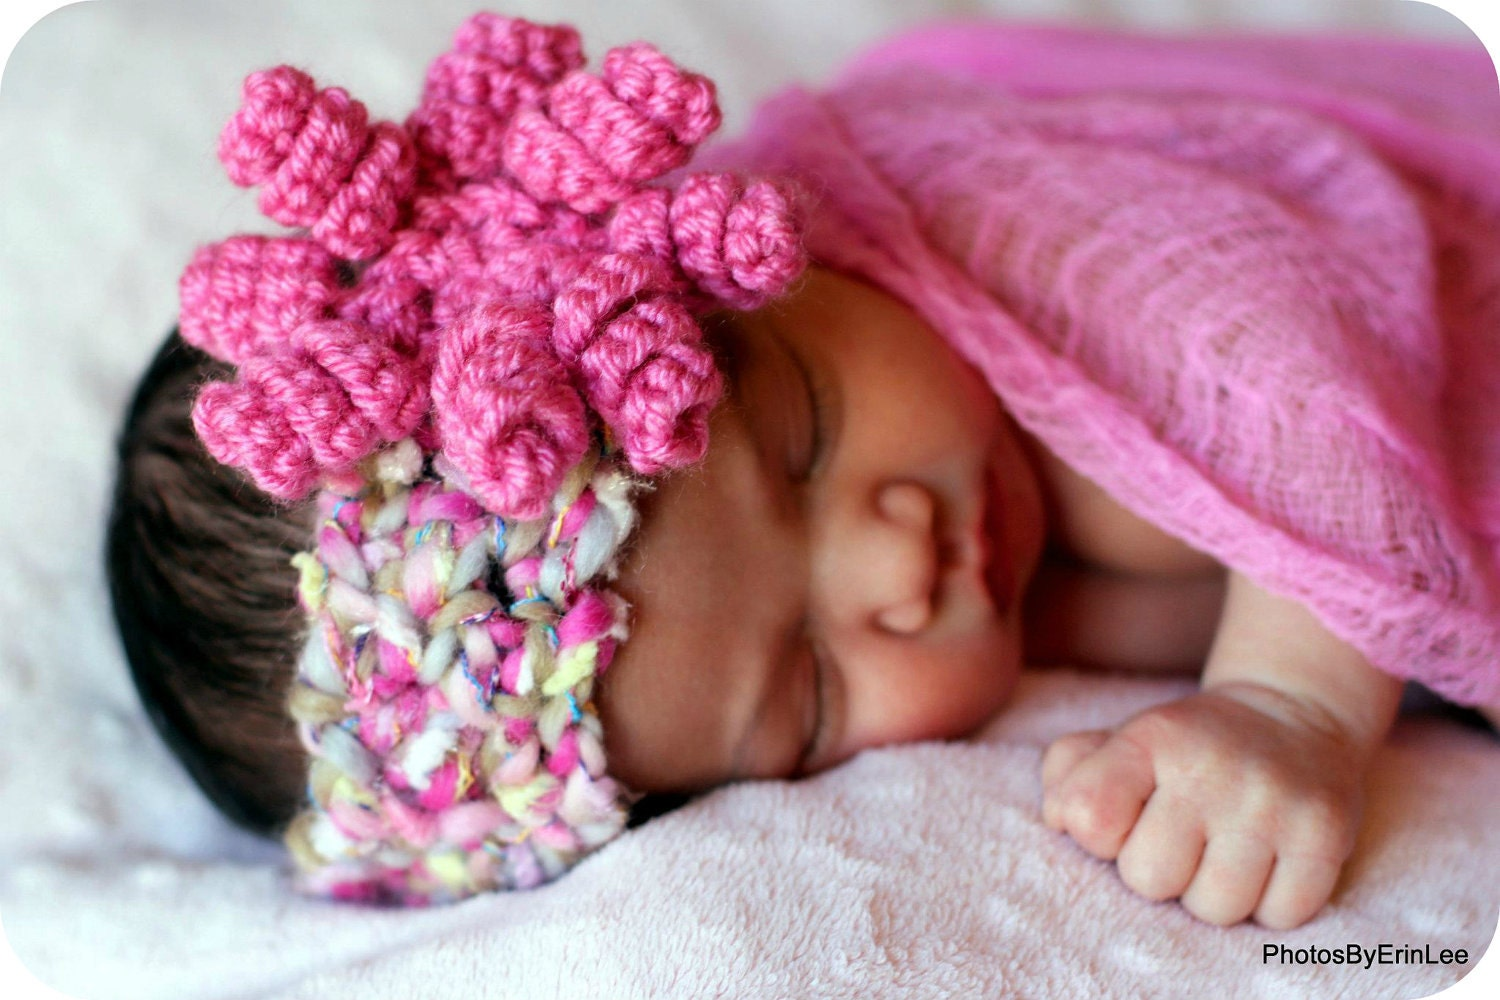 Crochet Headband Pattern Newborn : BABY Hat CROCHET PATTERN Headband with Curly-Q Flower